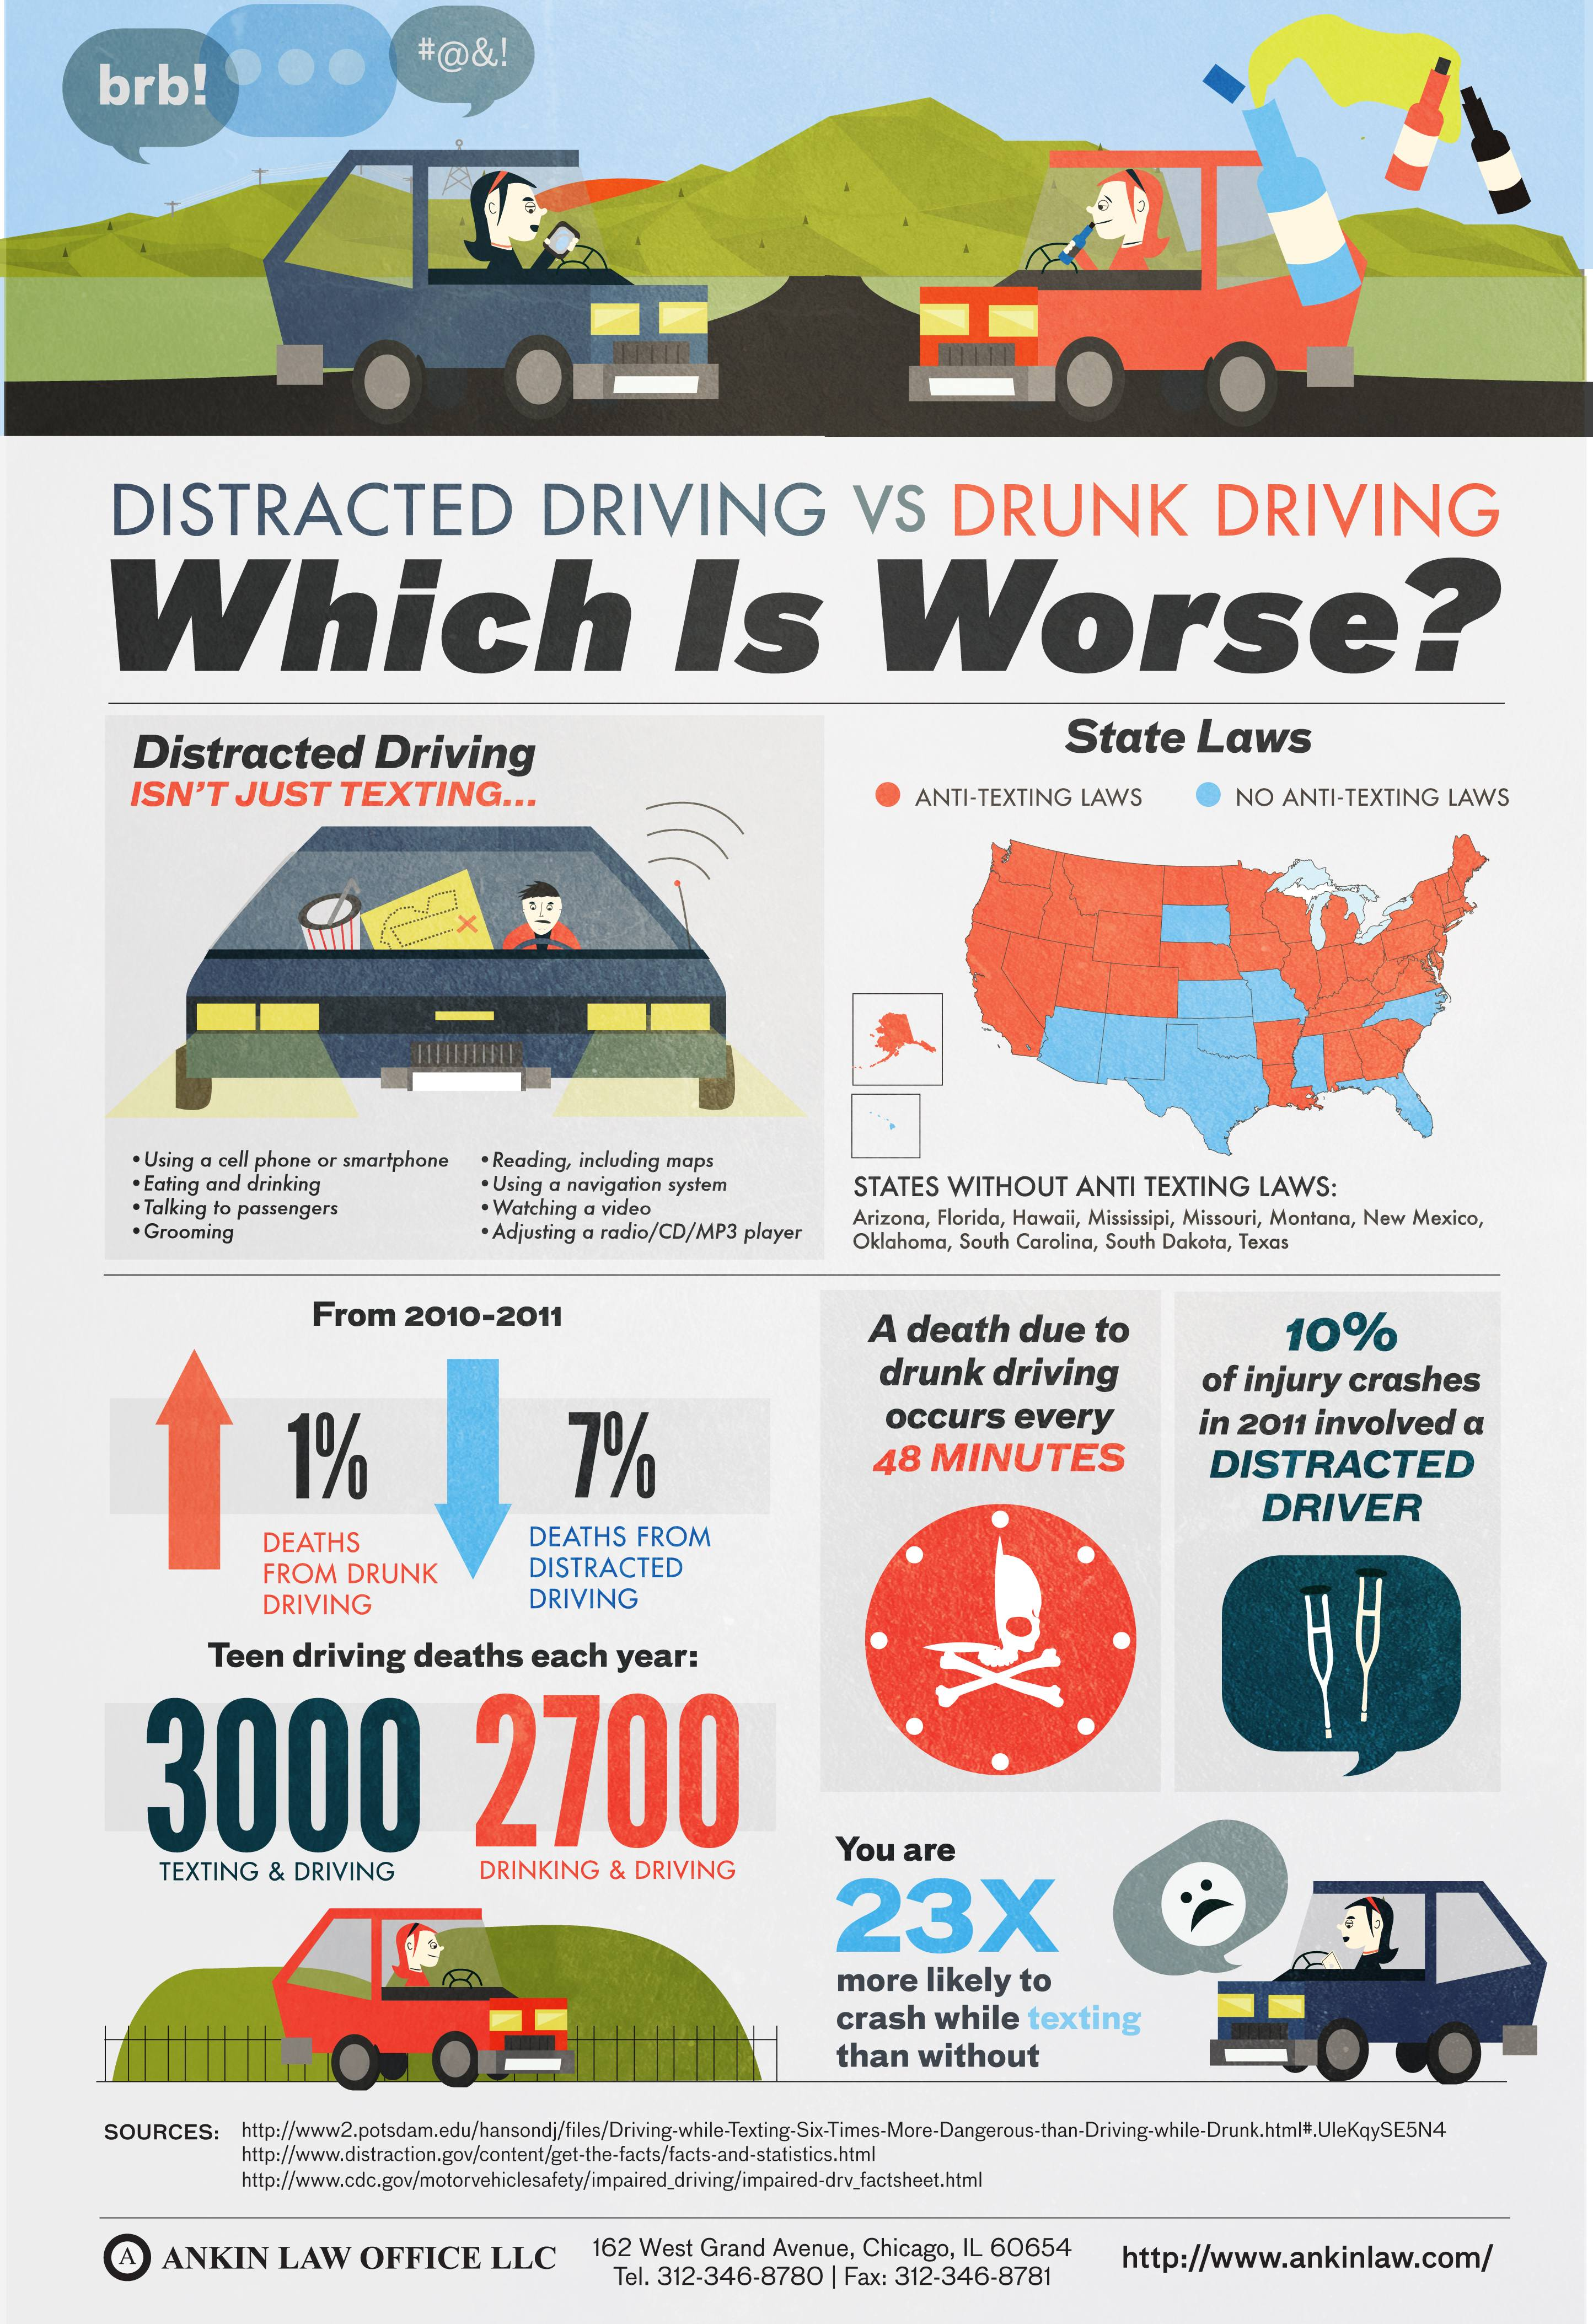 Drunk Driving Vs Distracted Driving Which Poses A Bigger